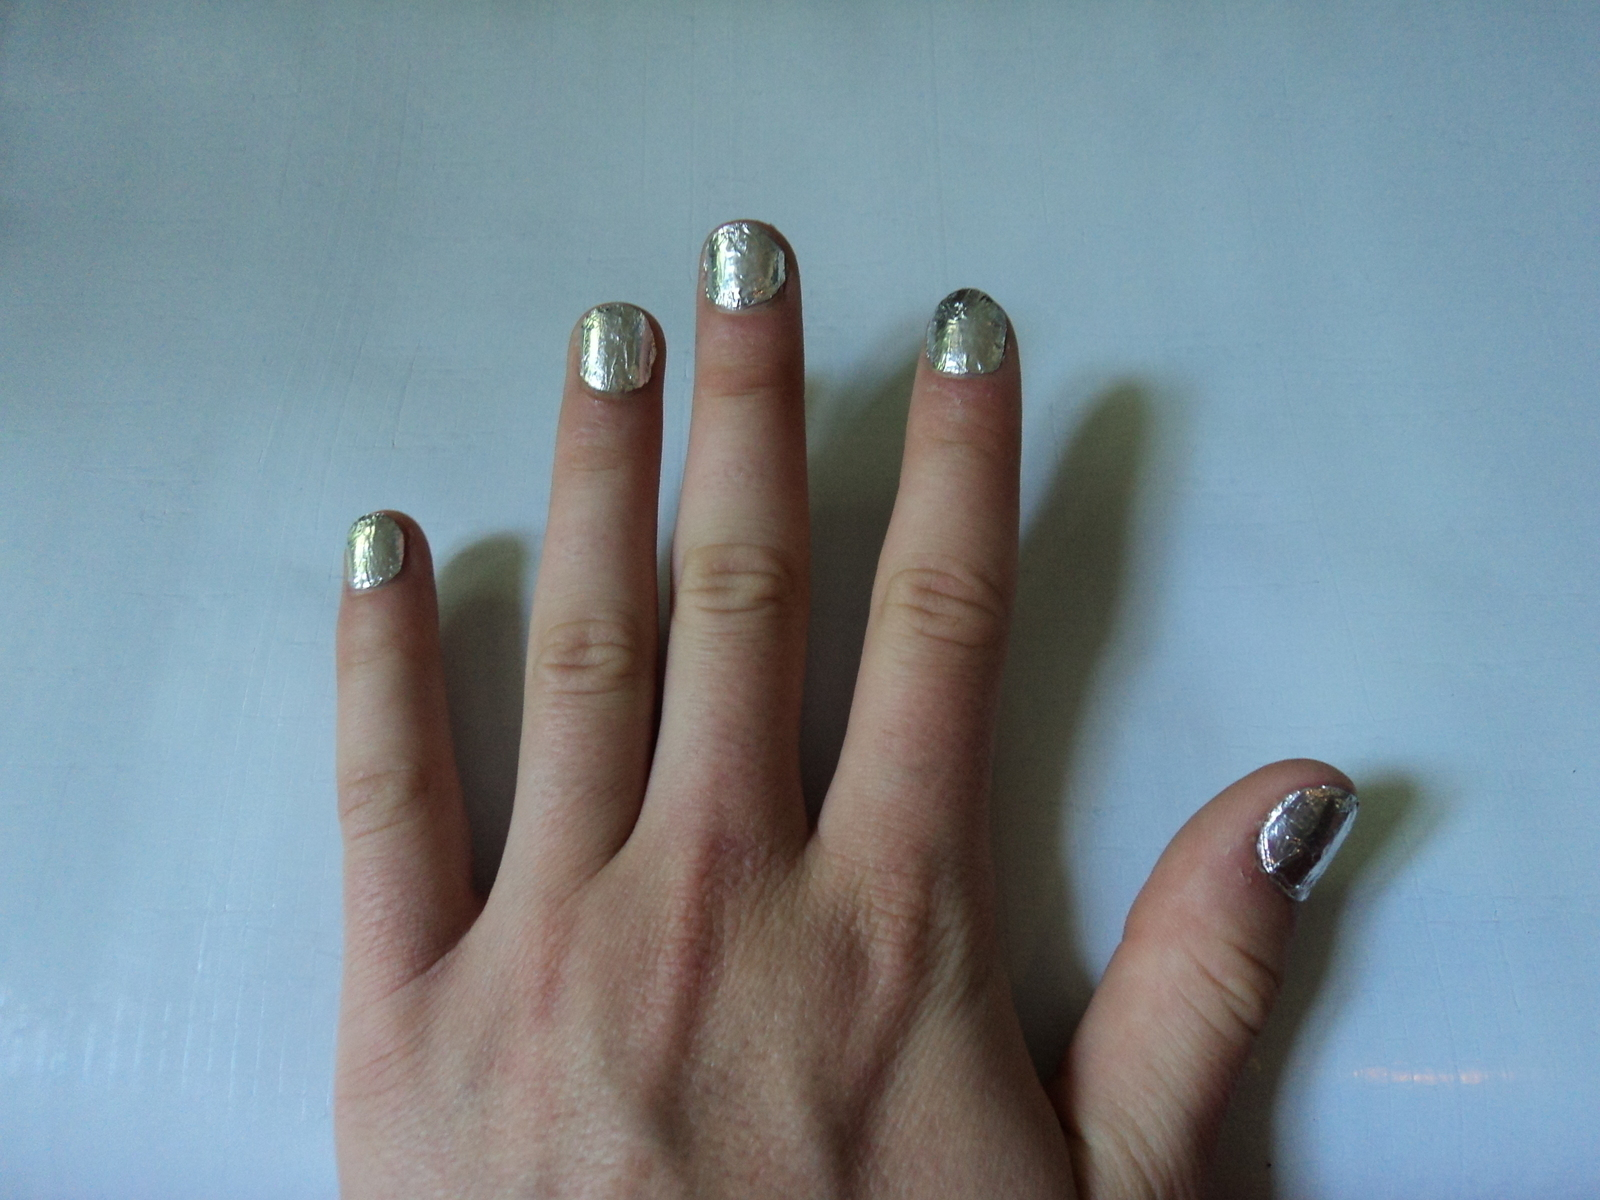 Foil Nails 183 How To Create Foil Nail Art 183 Art Nail Painting And Decorating On Cut Out Keep